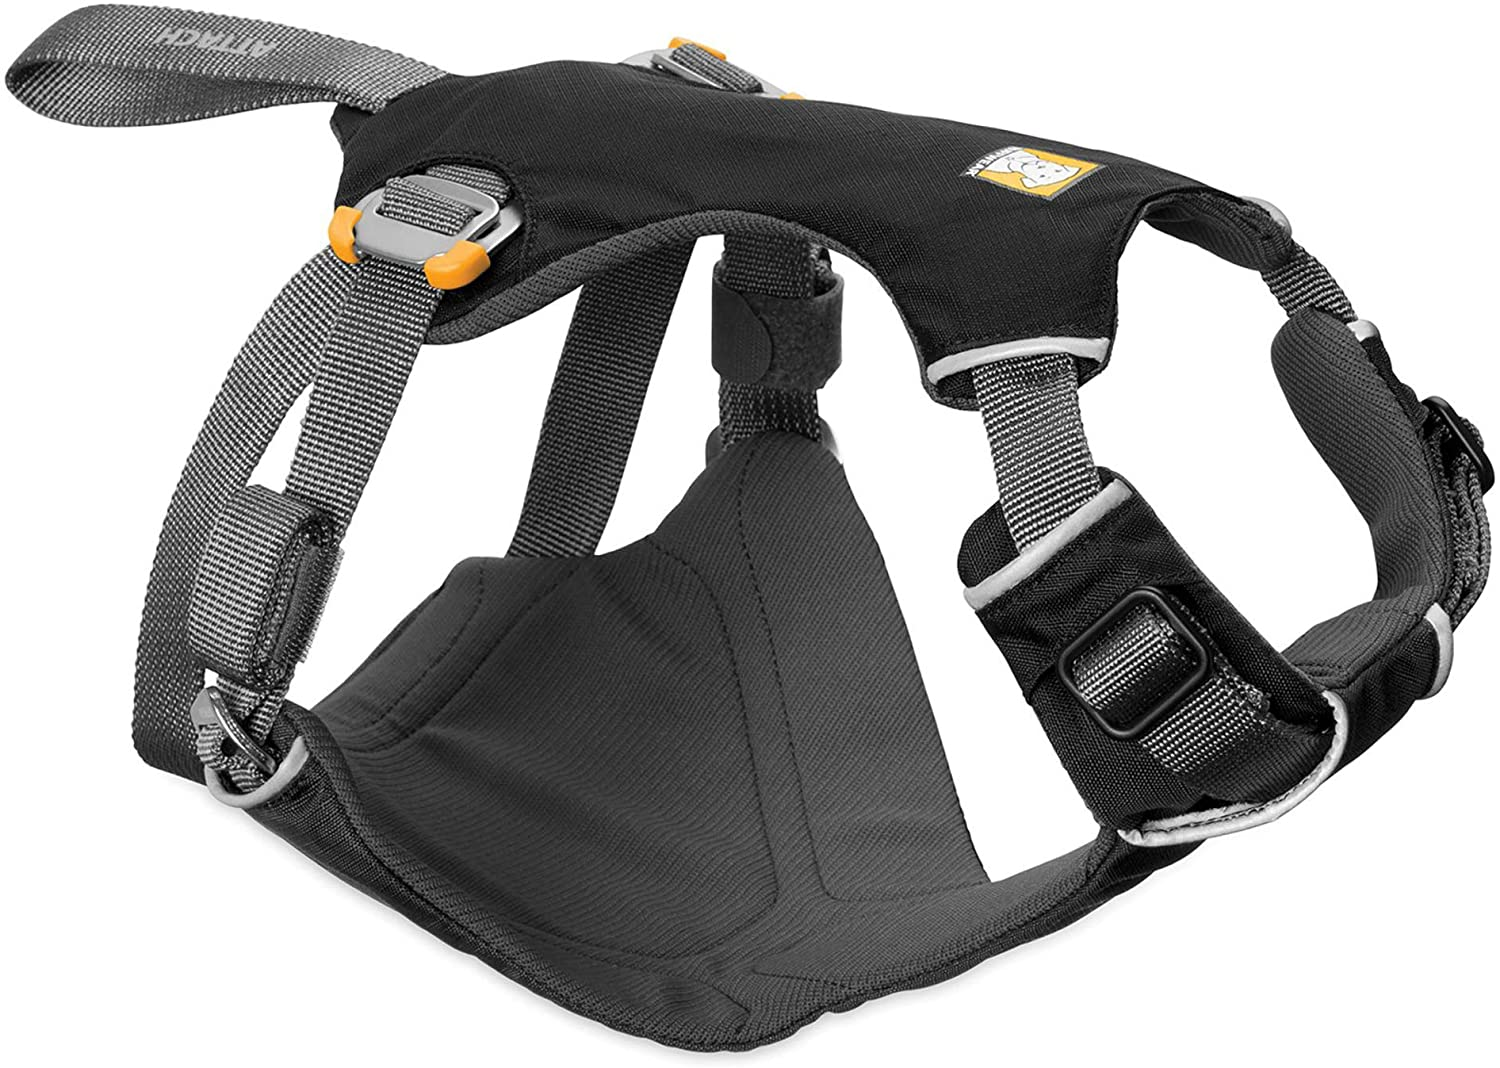 RUFFWEAR - Load Up, Dog Car Harness with Strength-Rated Hardware